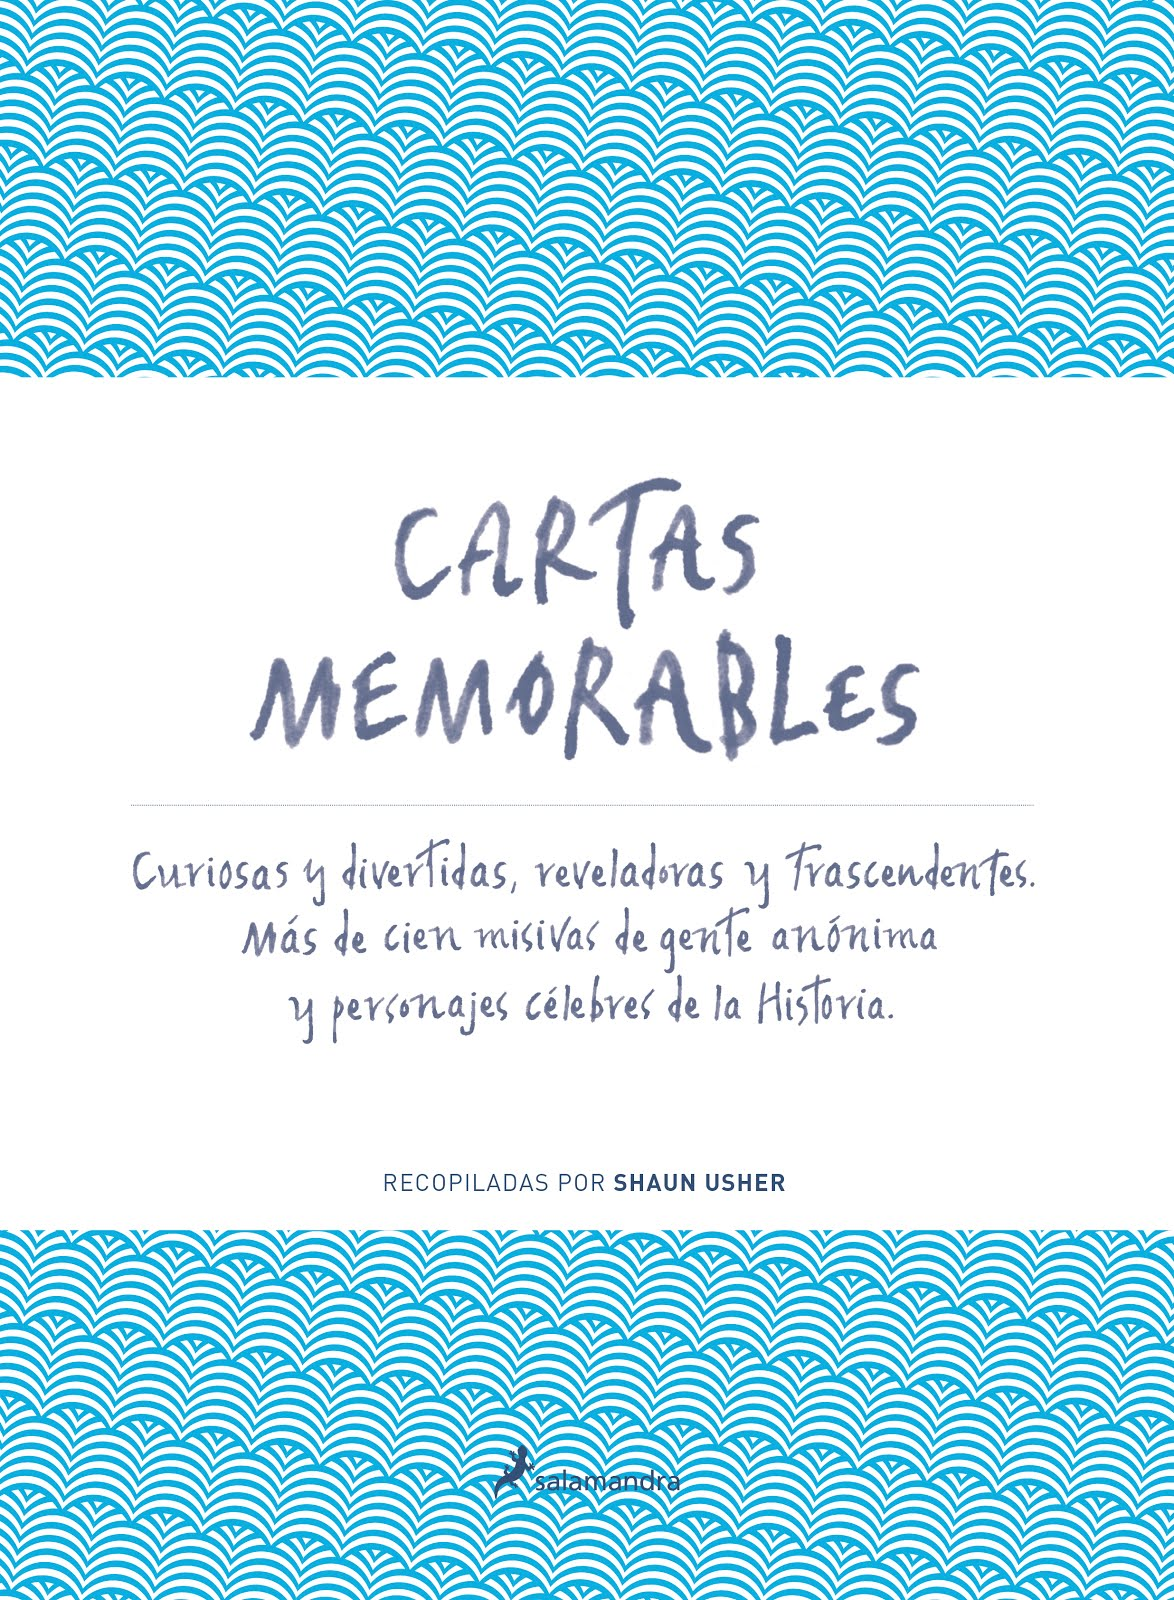 CARTAS MEMORABLES